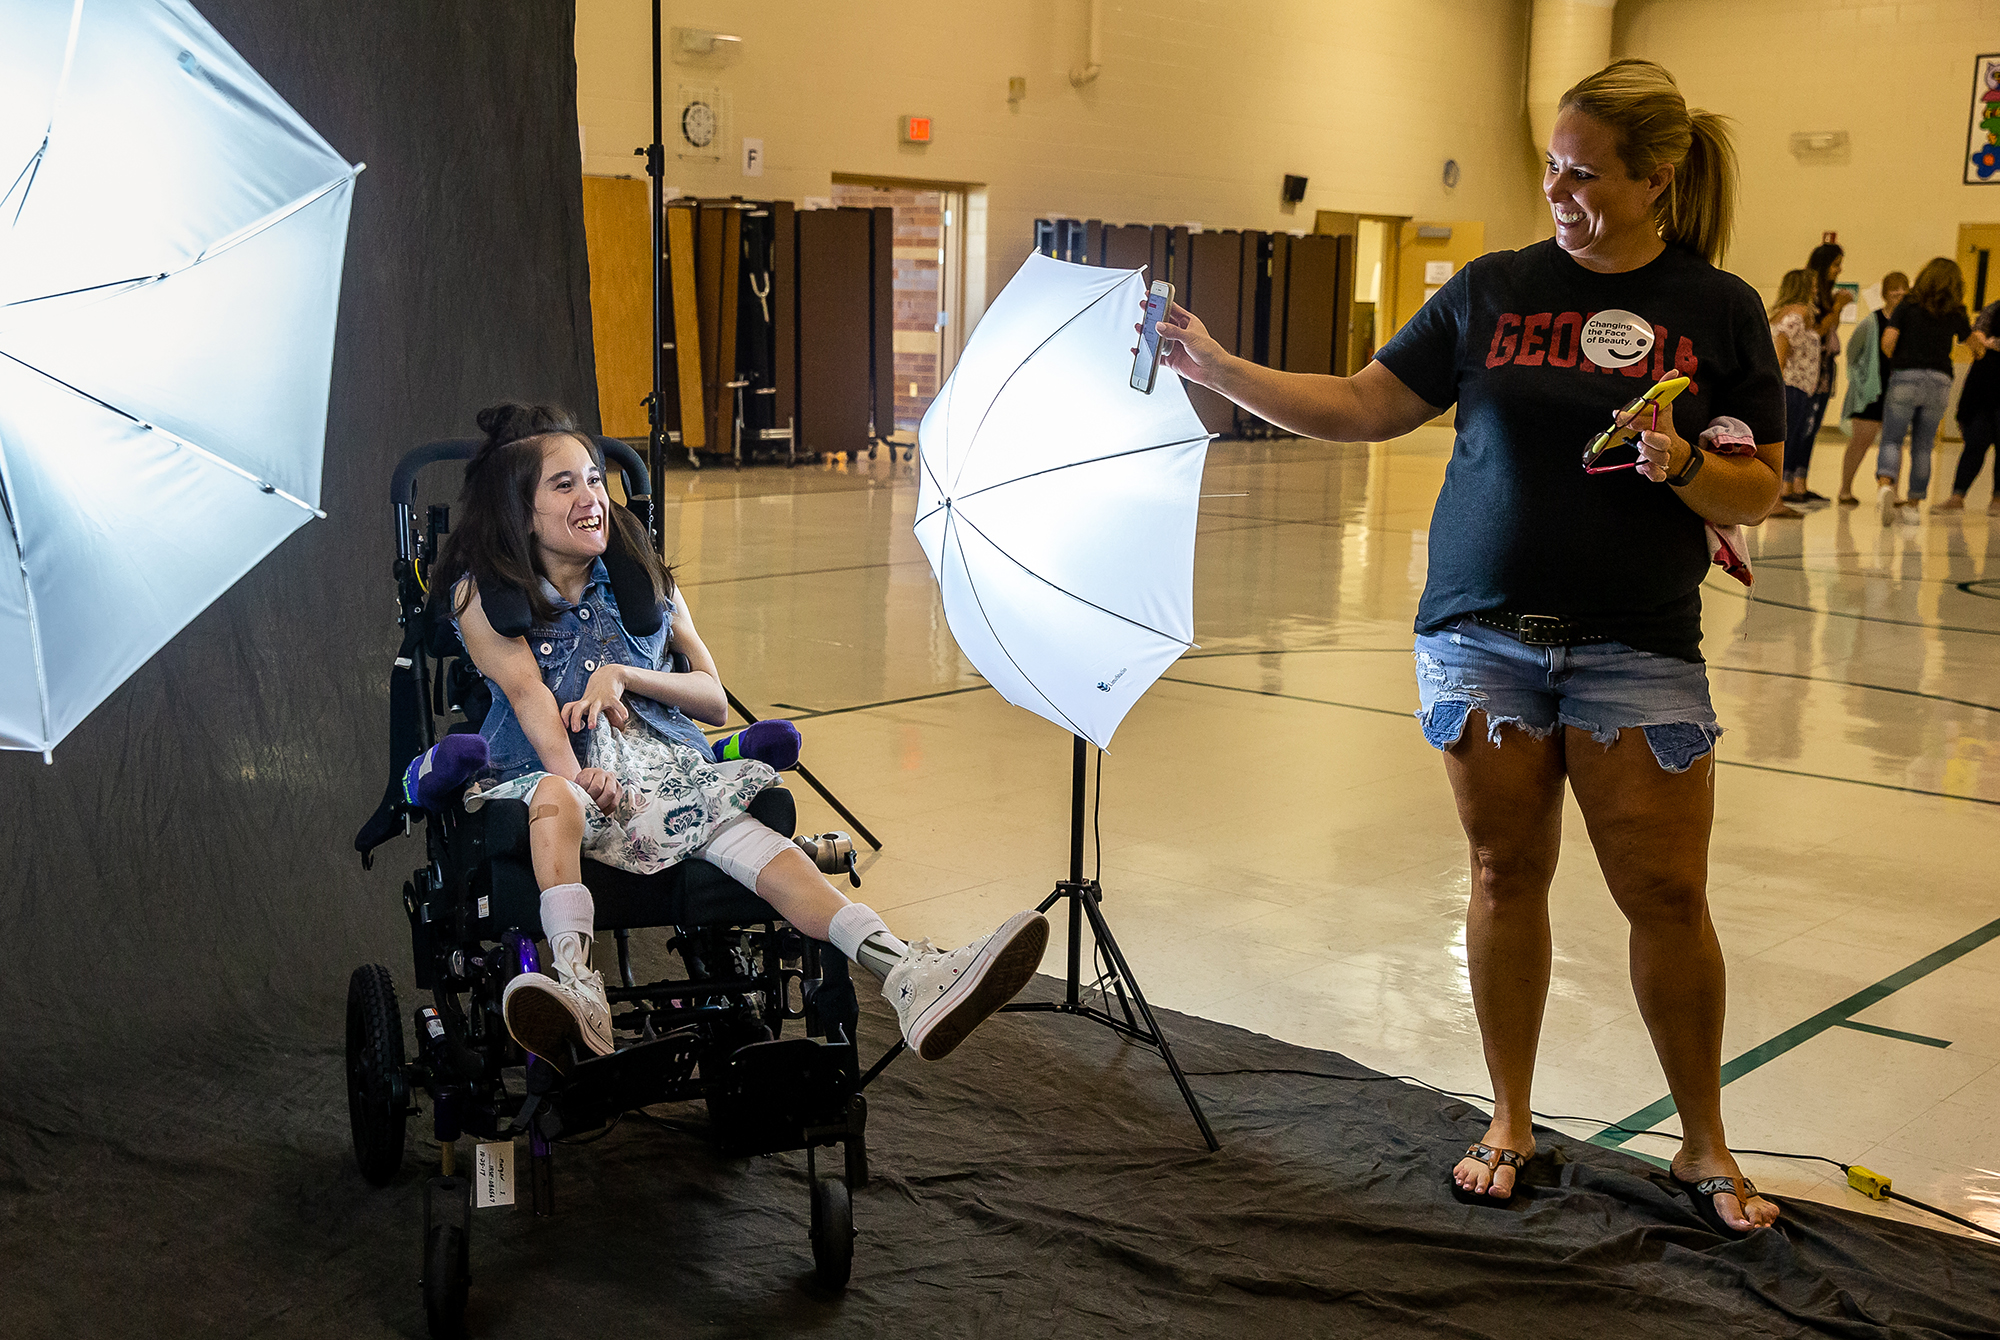 """Morgan Isenburg, 14, erupts in smiles as her mother, Tara Isenburg, right, plays a track from the """"Muppet Babies"""" to get her to smile for a photoshoot during the Changing the Face of Beauty headshot clinic at Lindsay Elementary School, Friday, July 27, 2018, in Springfield, Ill. """"This was great,"""" said Tara Isenburg about the photoshoot experience for her daughter who has cerebral palsy. """"She's never had makeup on her face before."""" Changing the Face of Beauty is nonprofit that aims to empower those living with disabilities through inclusion in advertising and media. [Justin L. Fowler/The State Journal-Register]"""